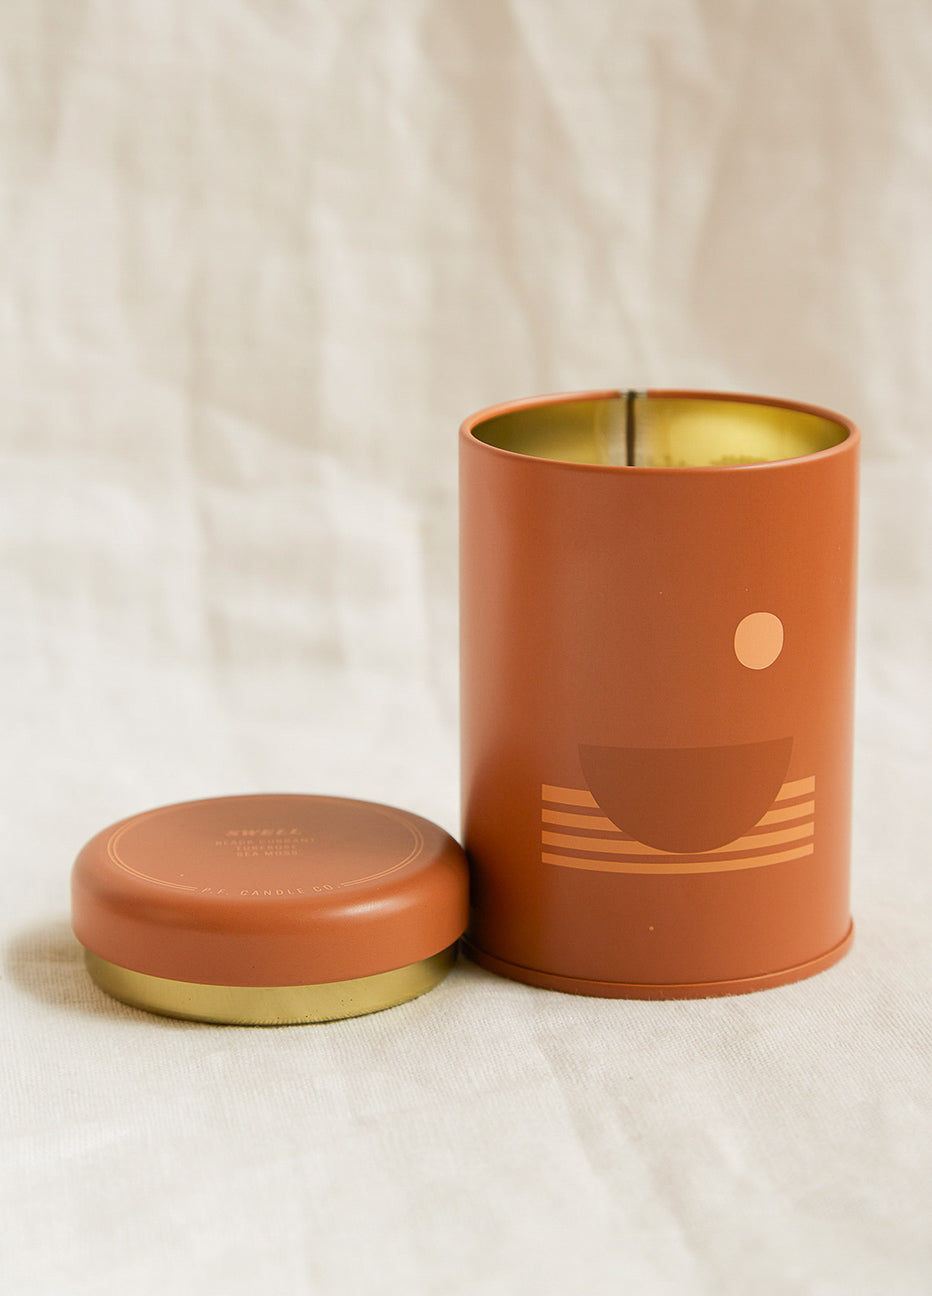 PF & Co Swell Candle